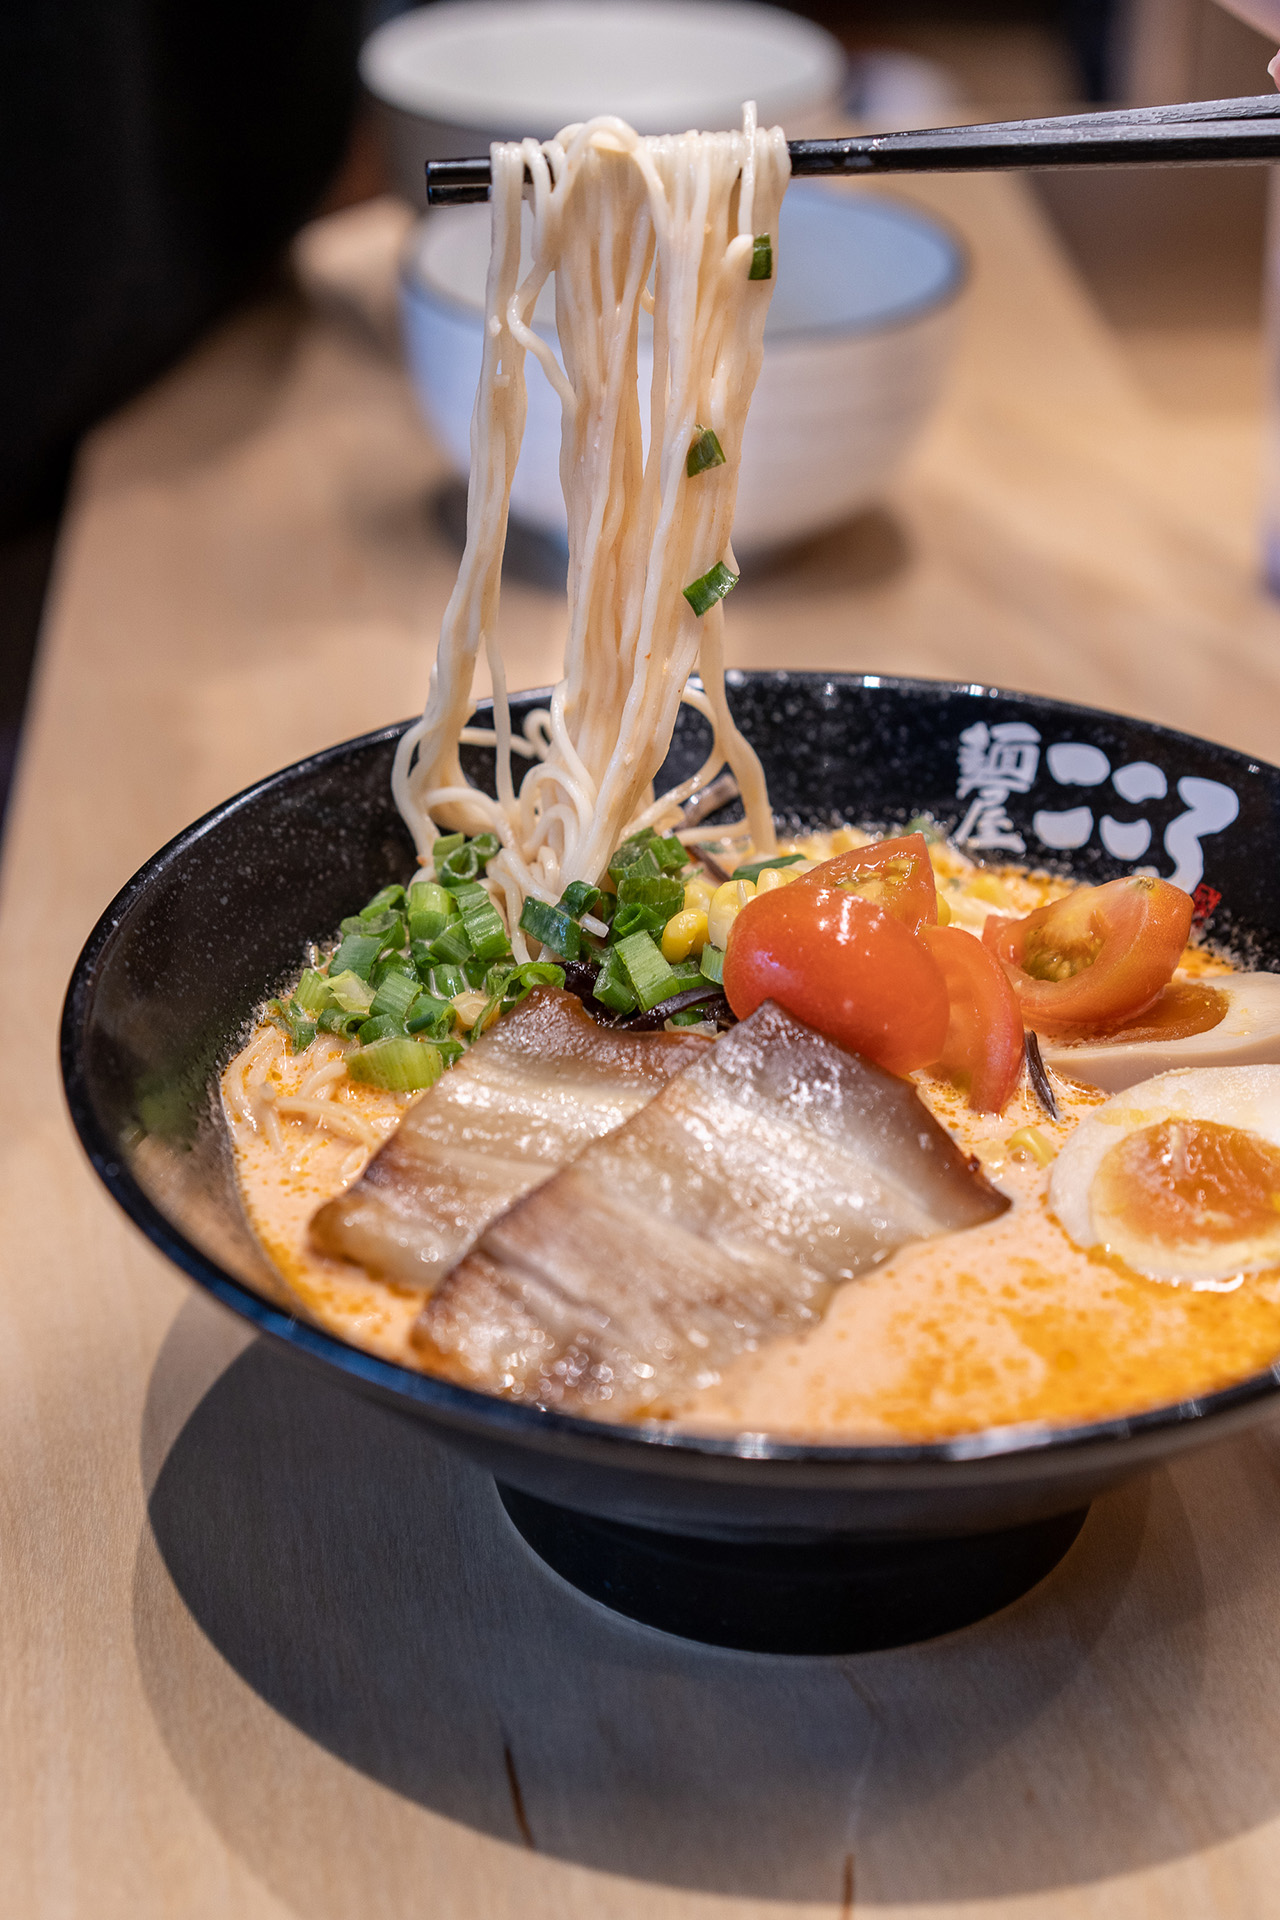 Mix all the ingredients for an authentic mazesoba experience.